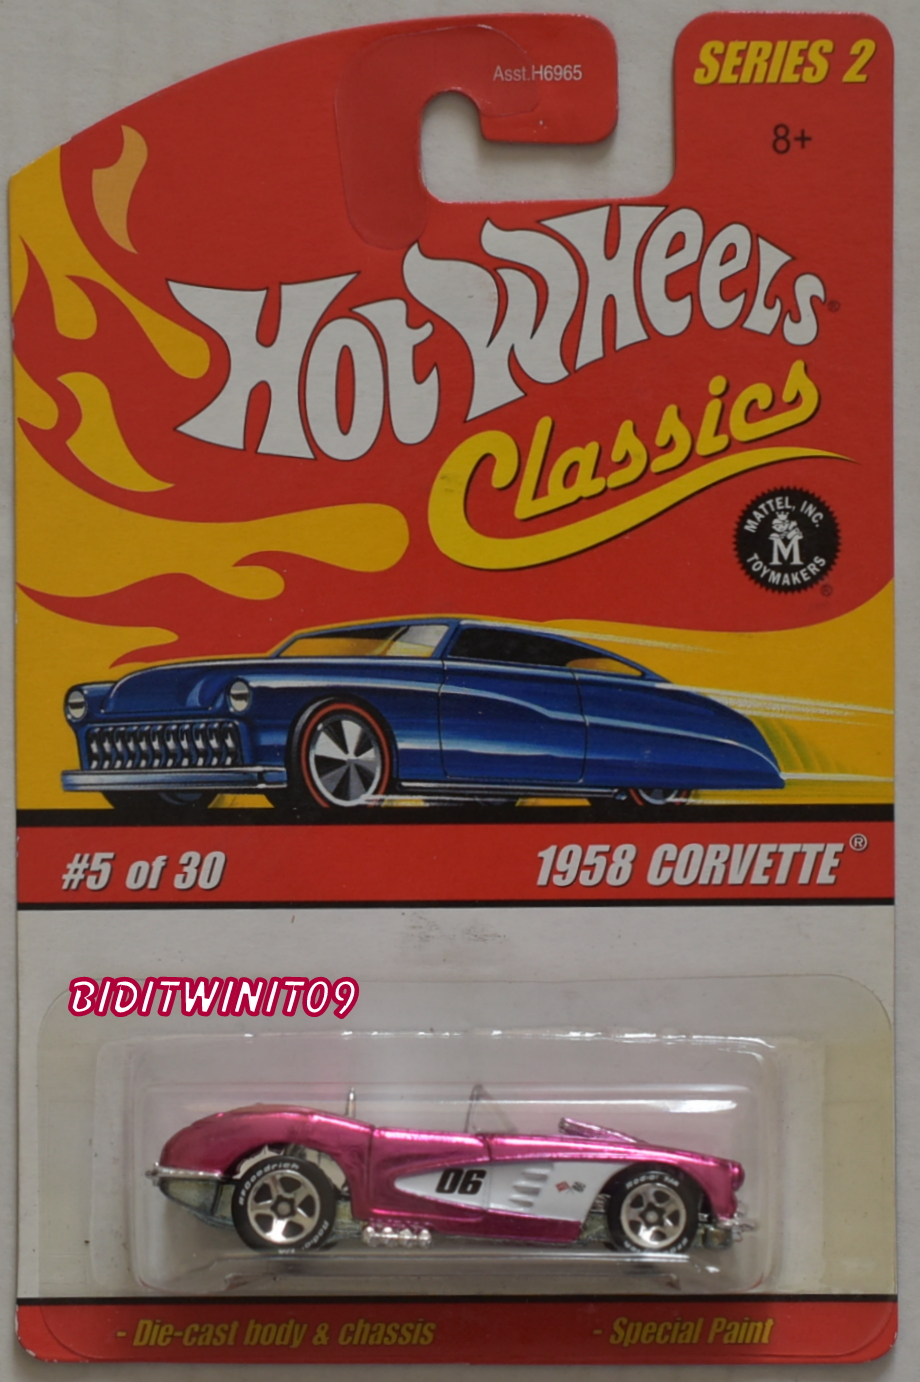 HOT WHEELS CLASSICS SERIES 2 #5/30 1958 CORVETTE PINK